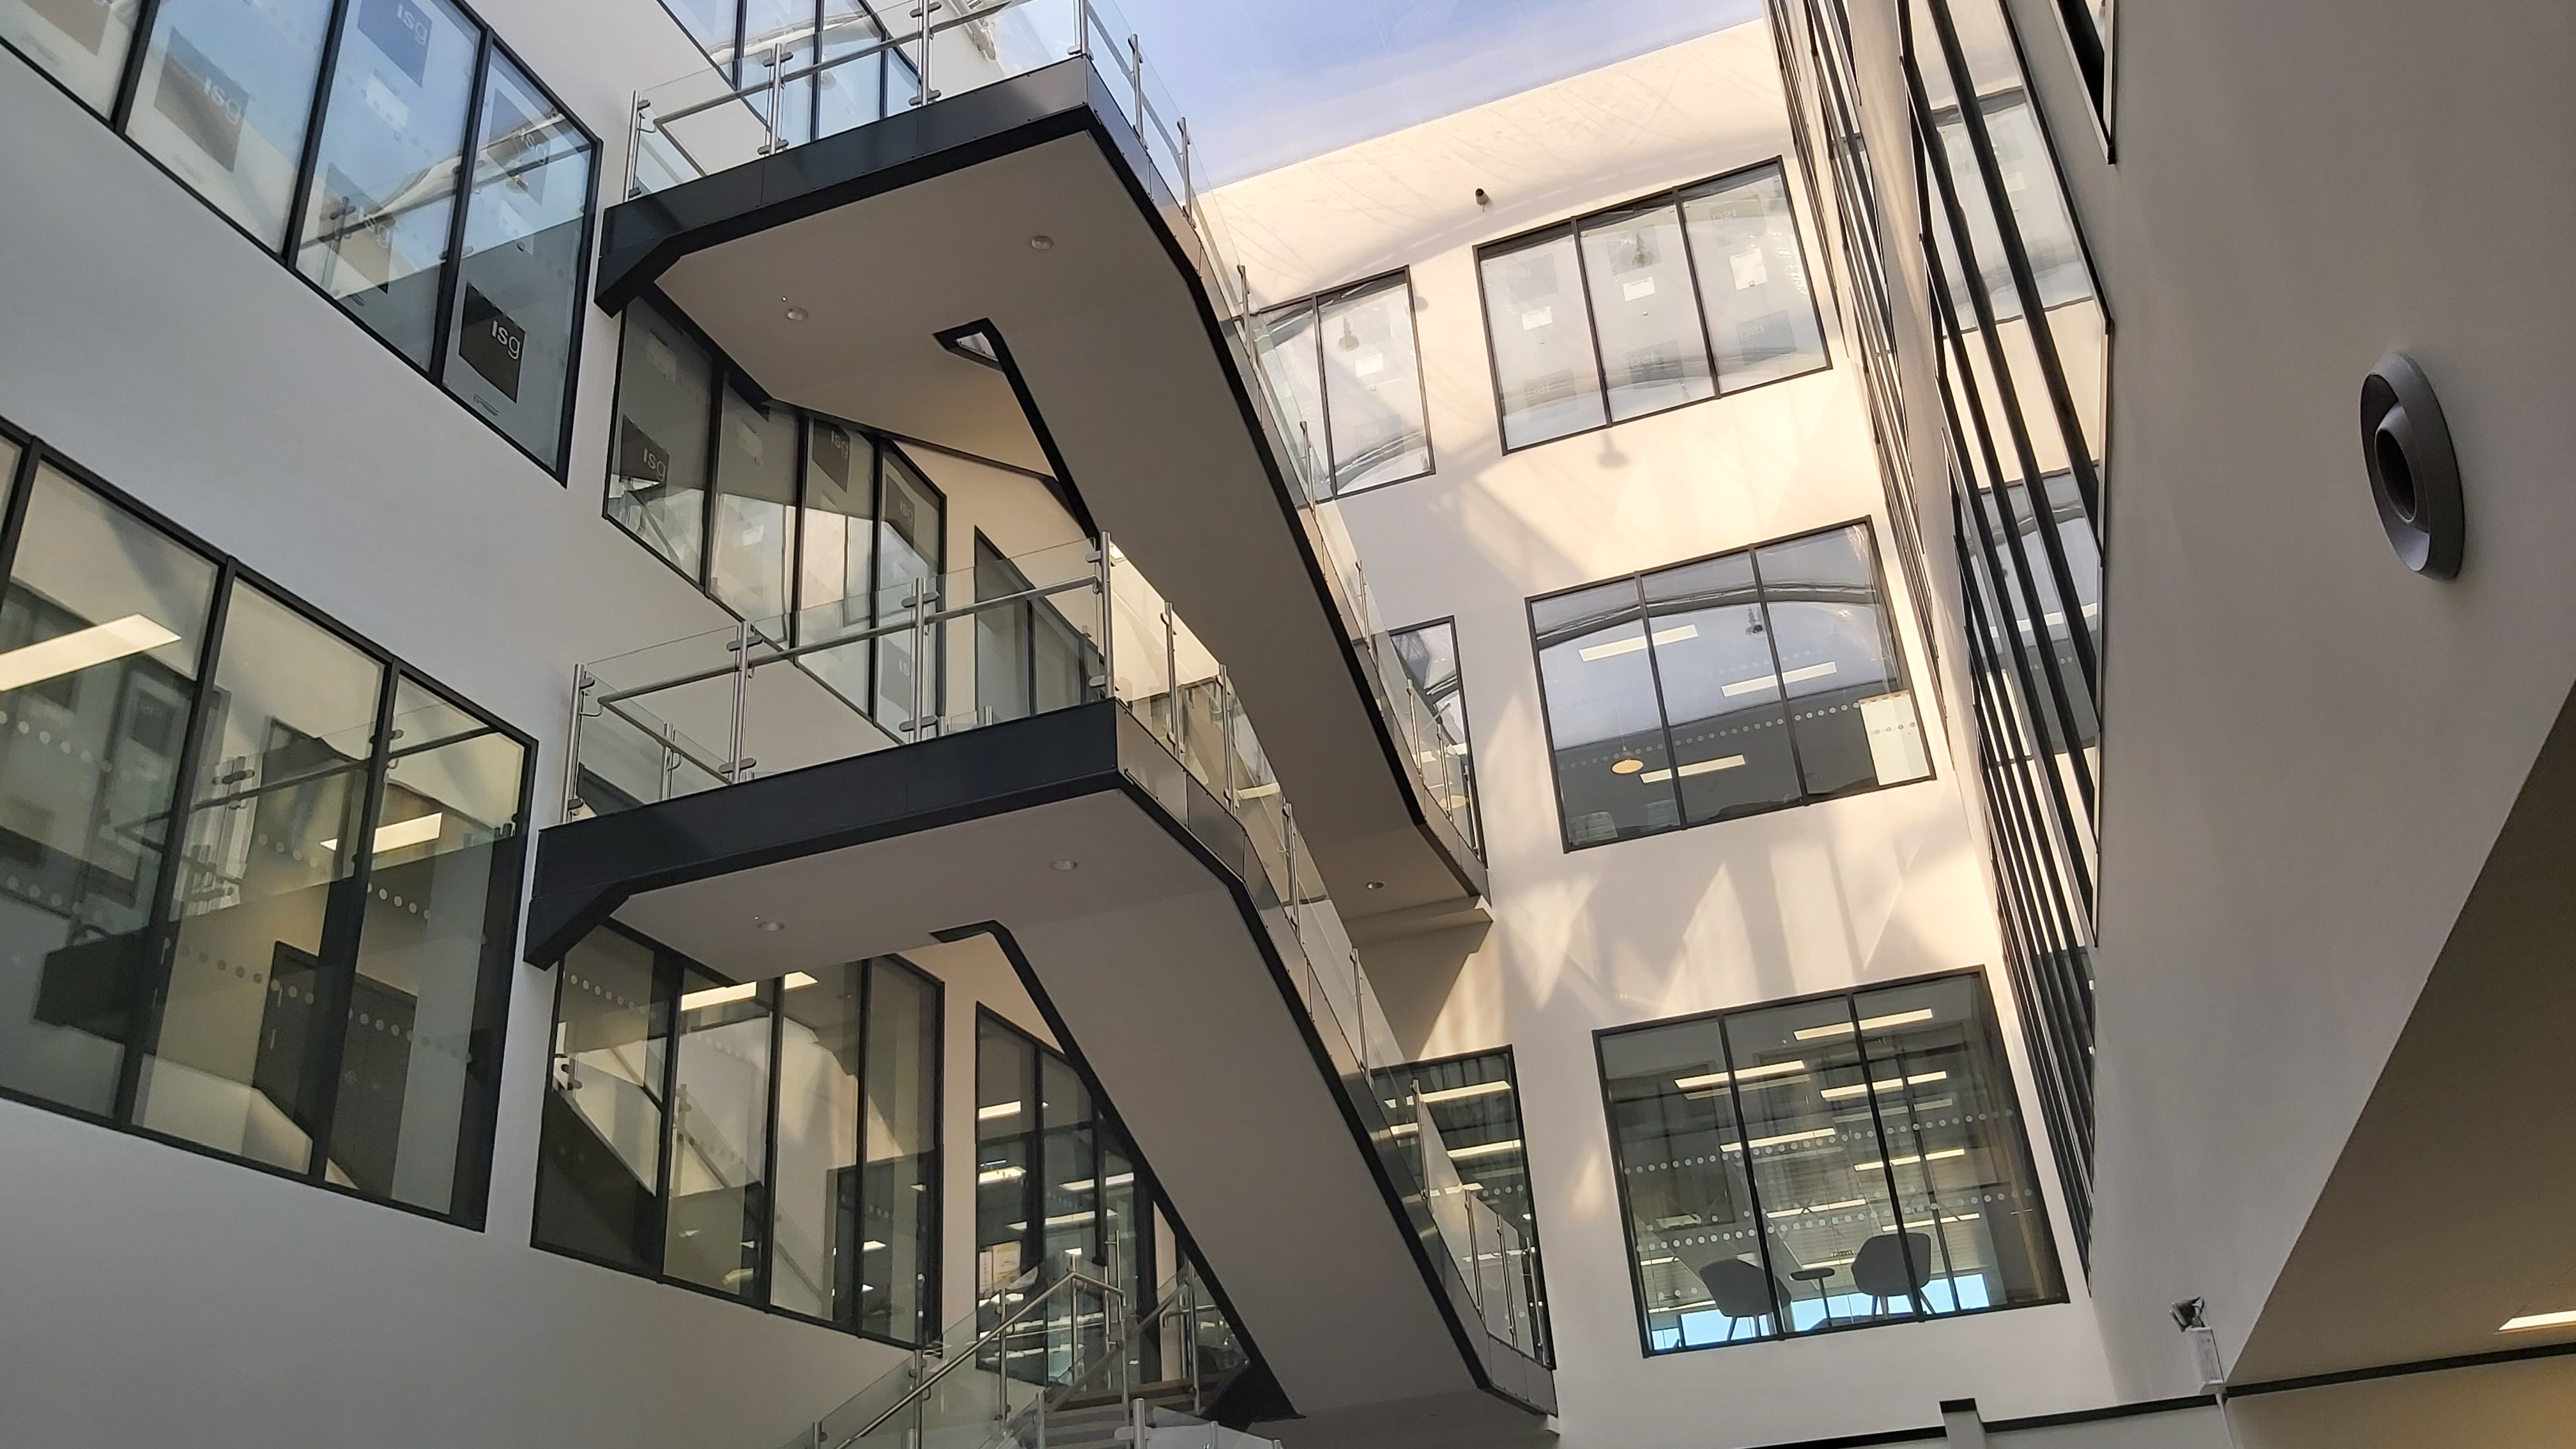 Imperial College, White City Campus, London